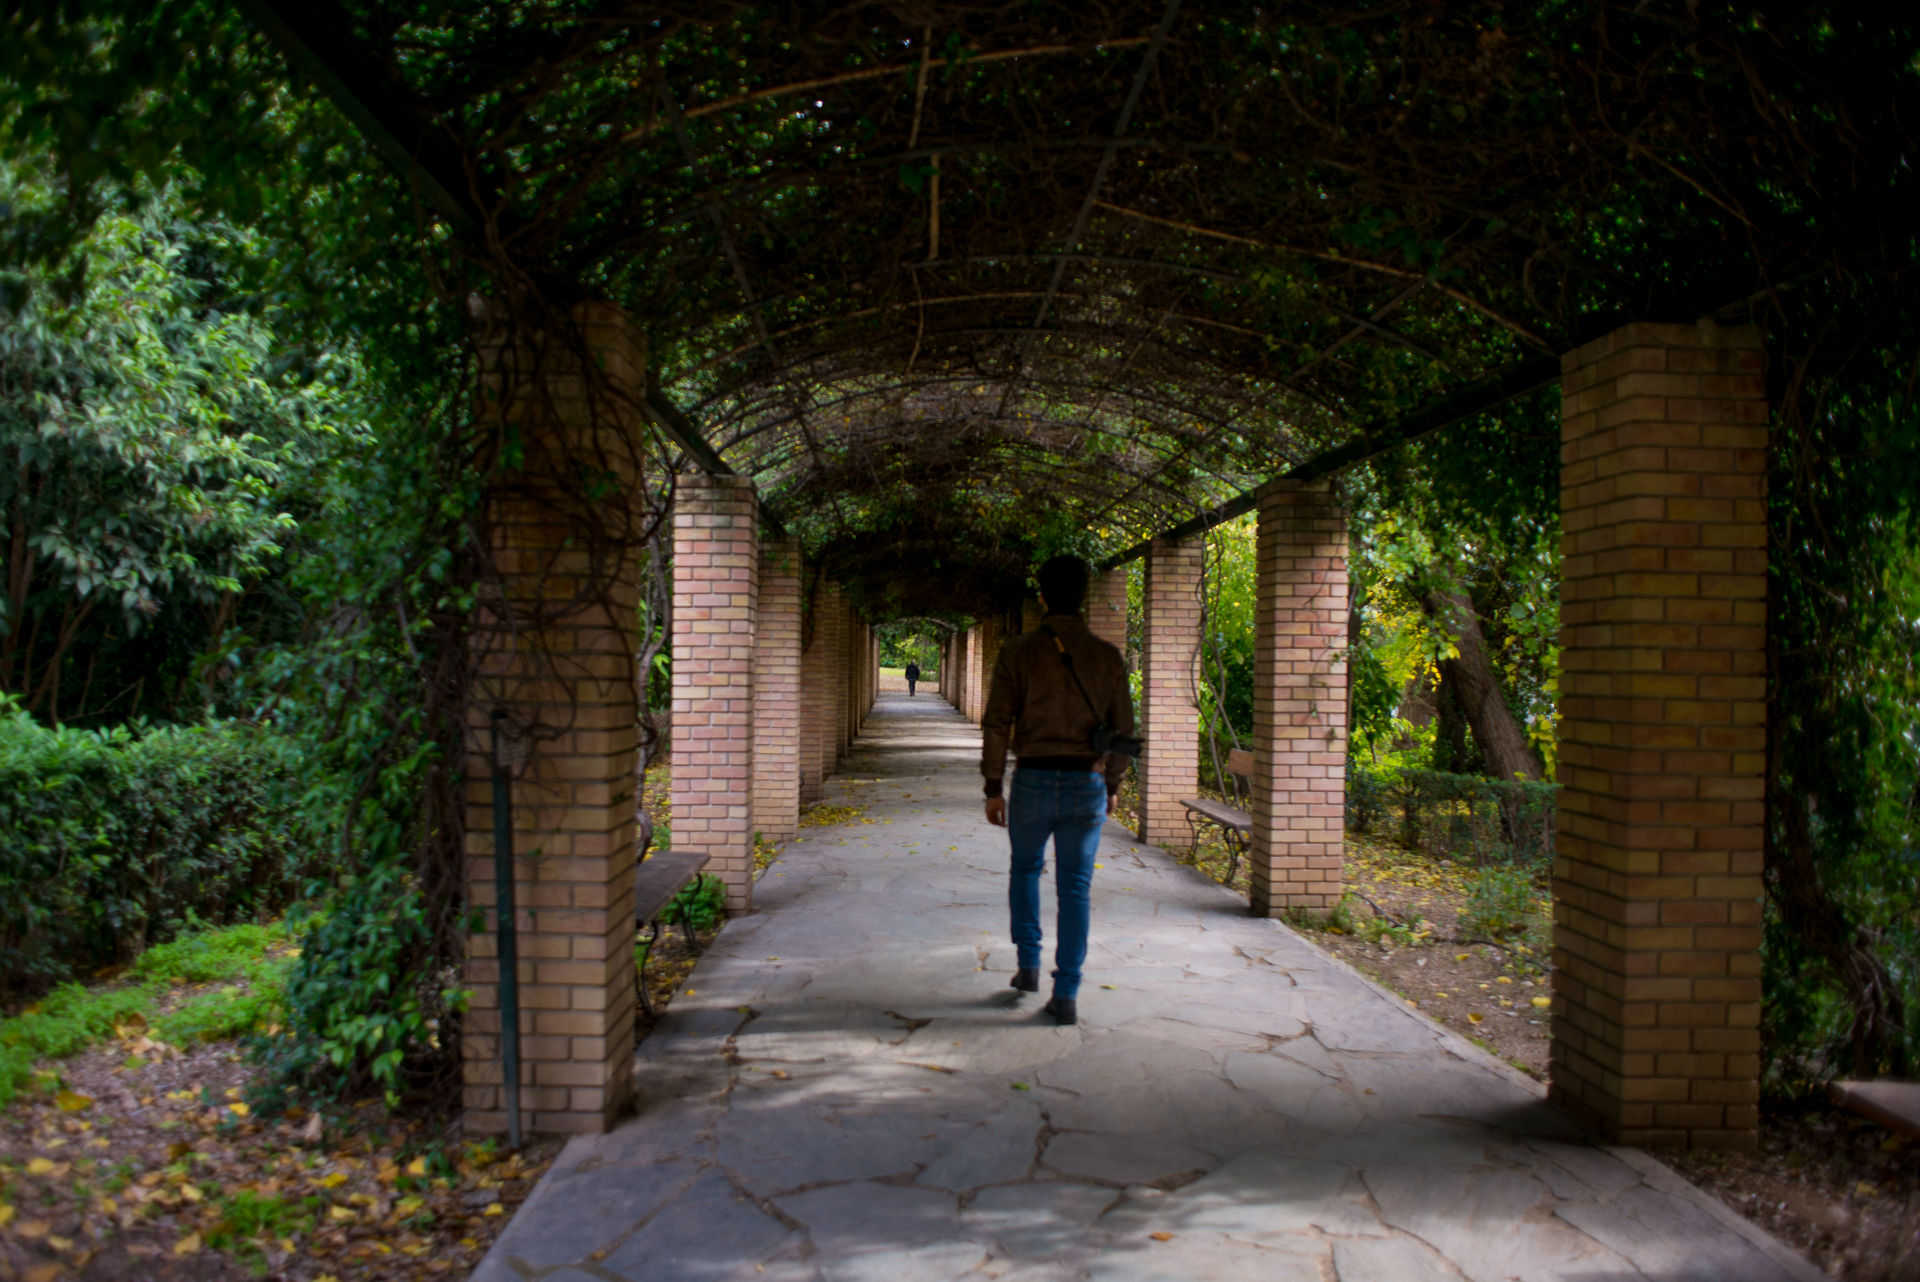 Man walking in the National Garden